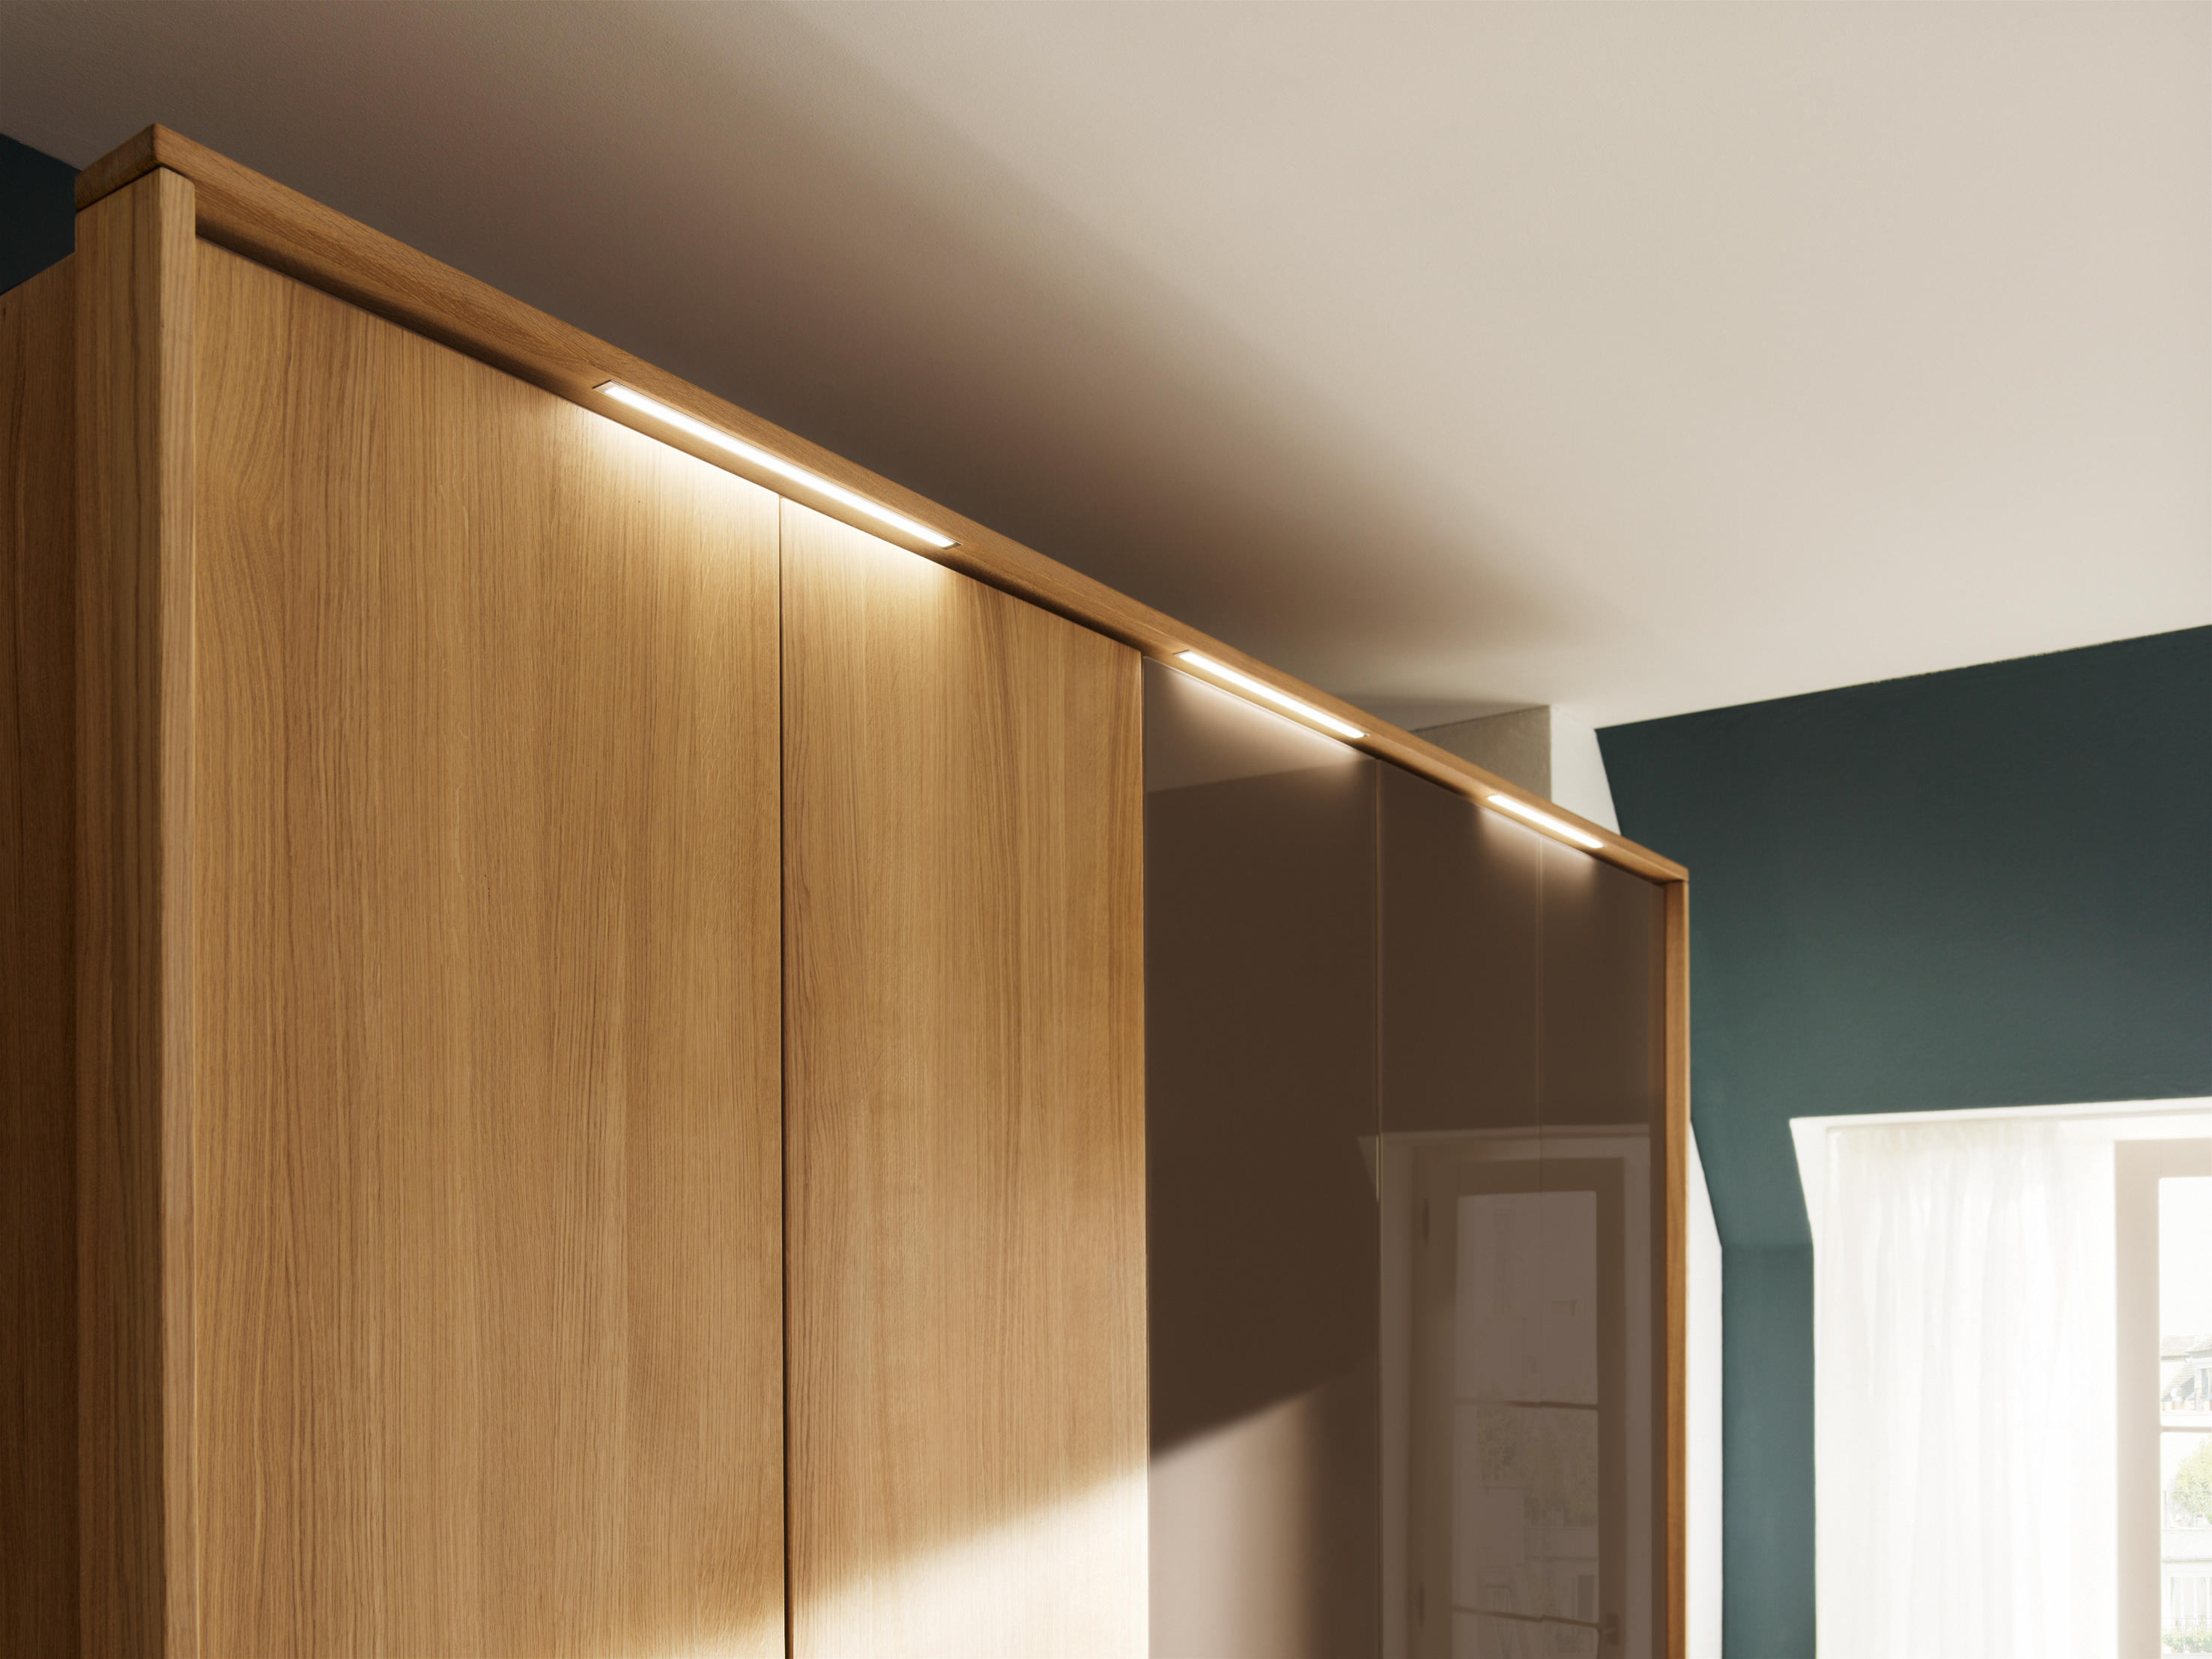 soft wardrobe system cabinets from team 7 architonic. Black Bedroom Furniture Sets. Home Design Ideas